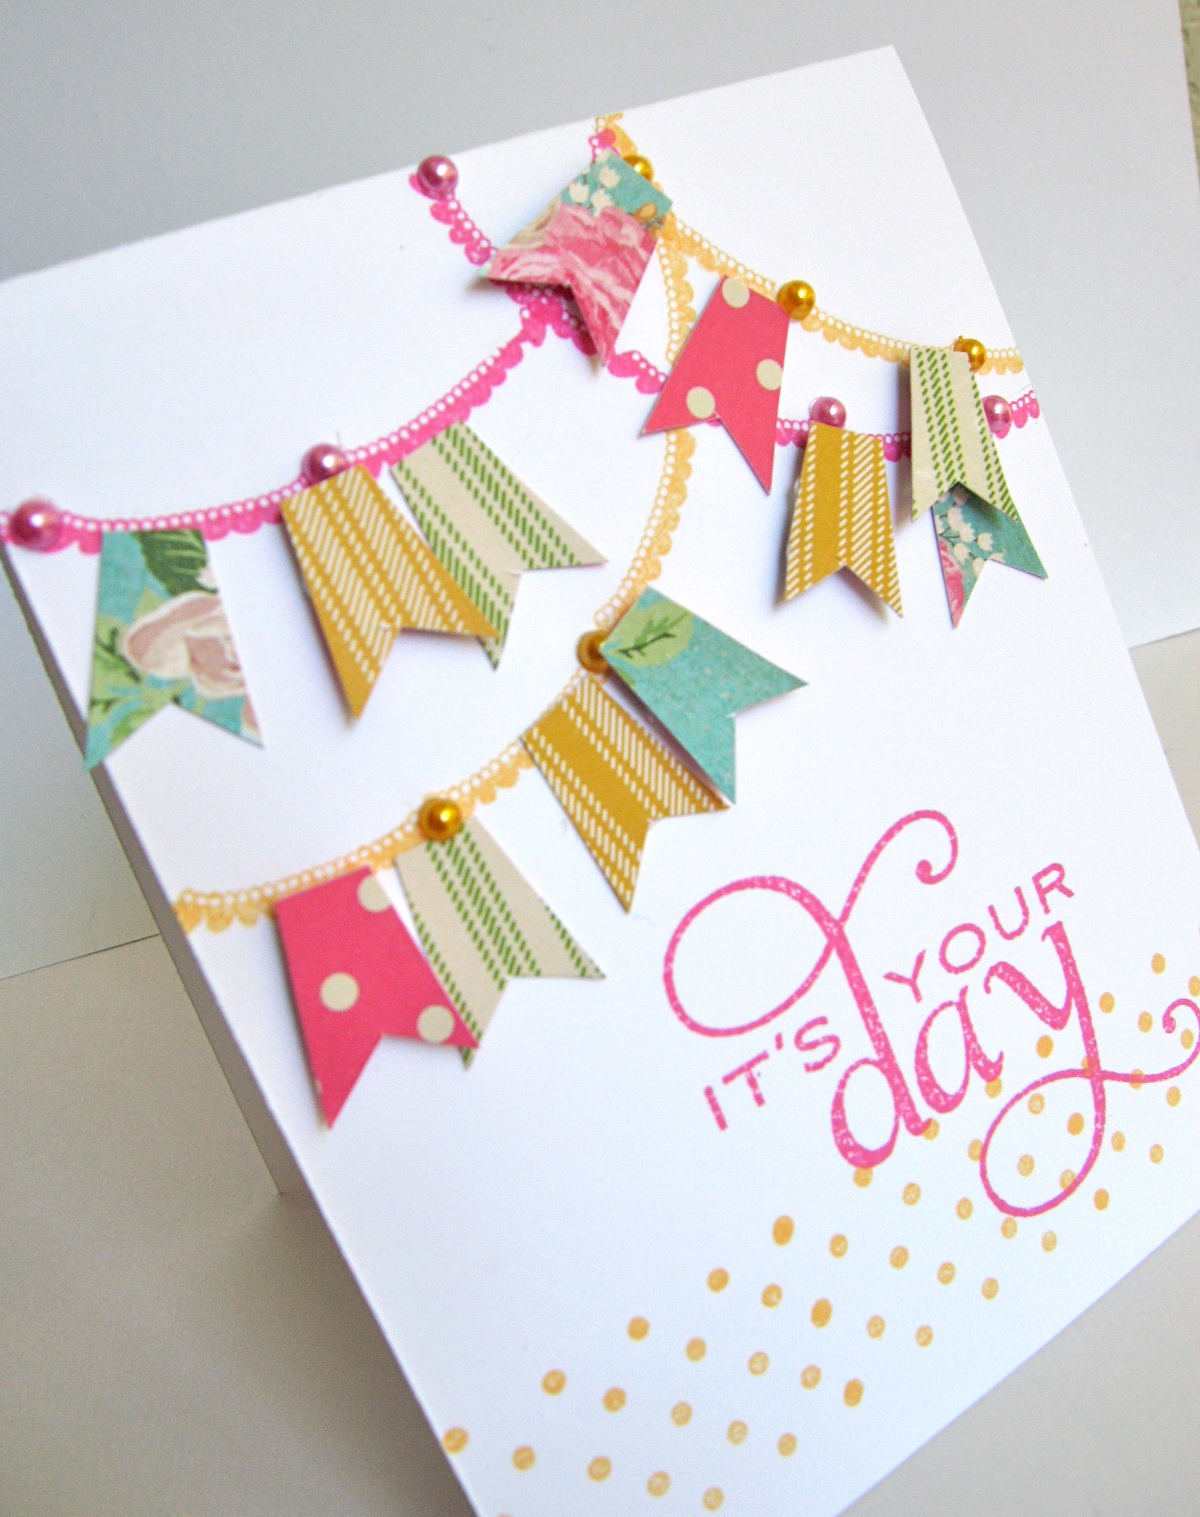 how to make a cool birthday card out of paper